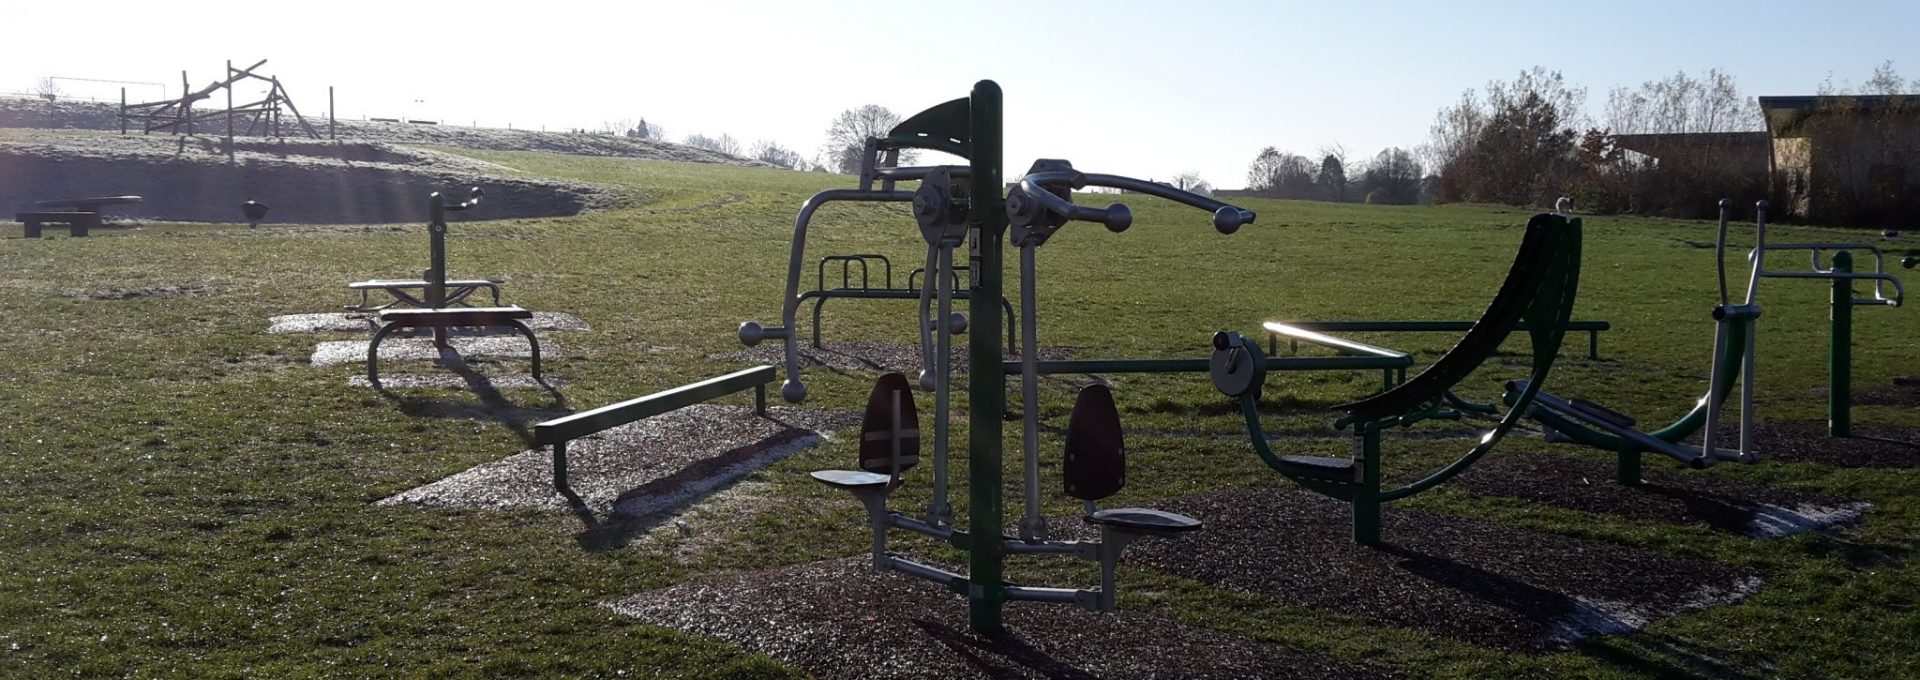 Frome's Outdoor Gym